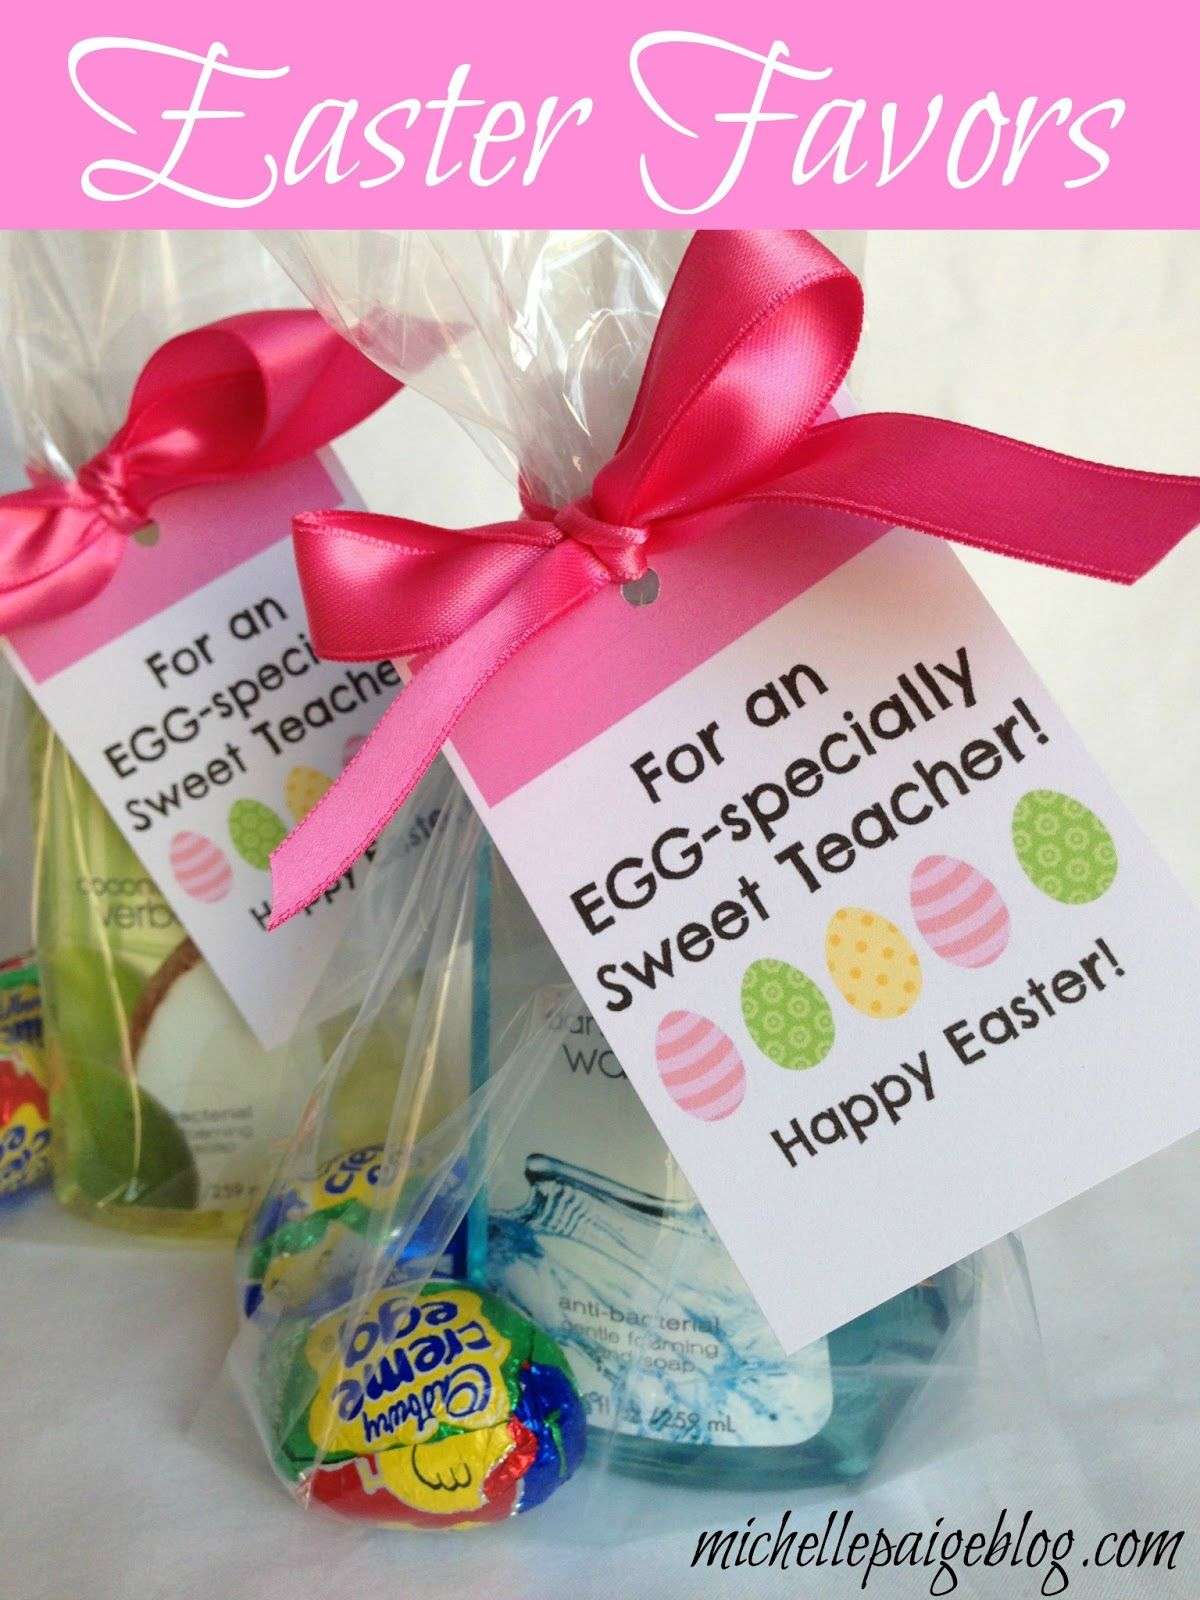 Michelle paige easter favors for teachers friends and family michelle paige easter favors for teachers friends and family negle Gallery